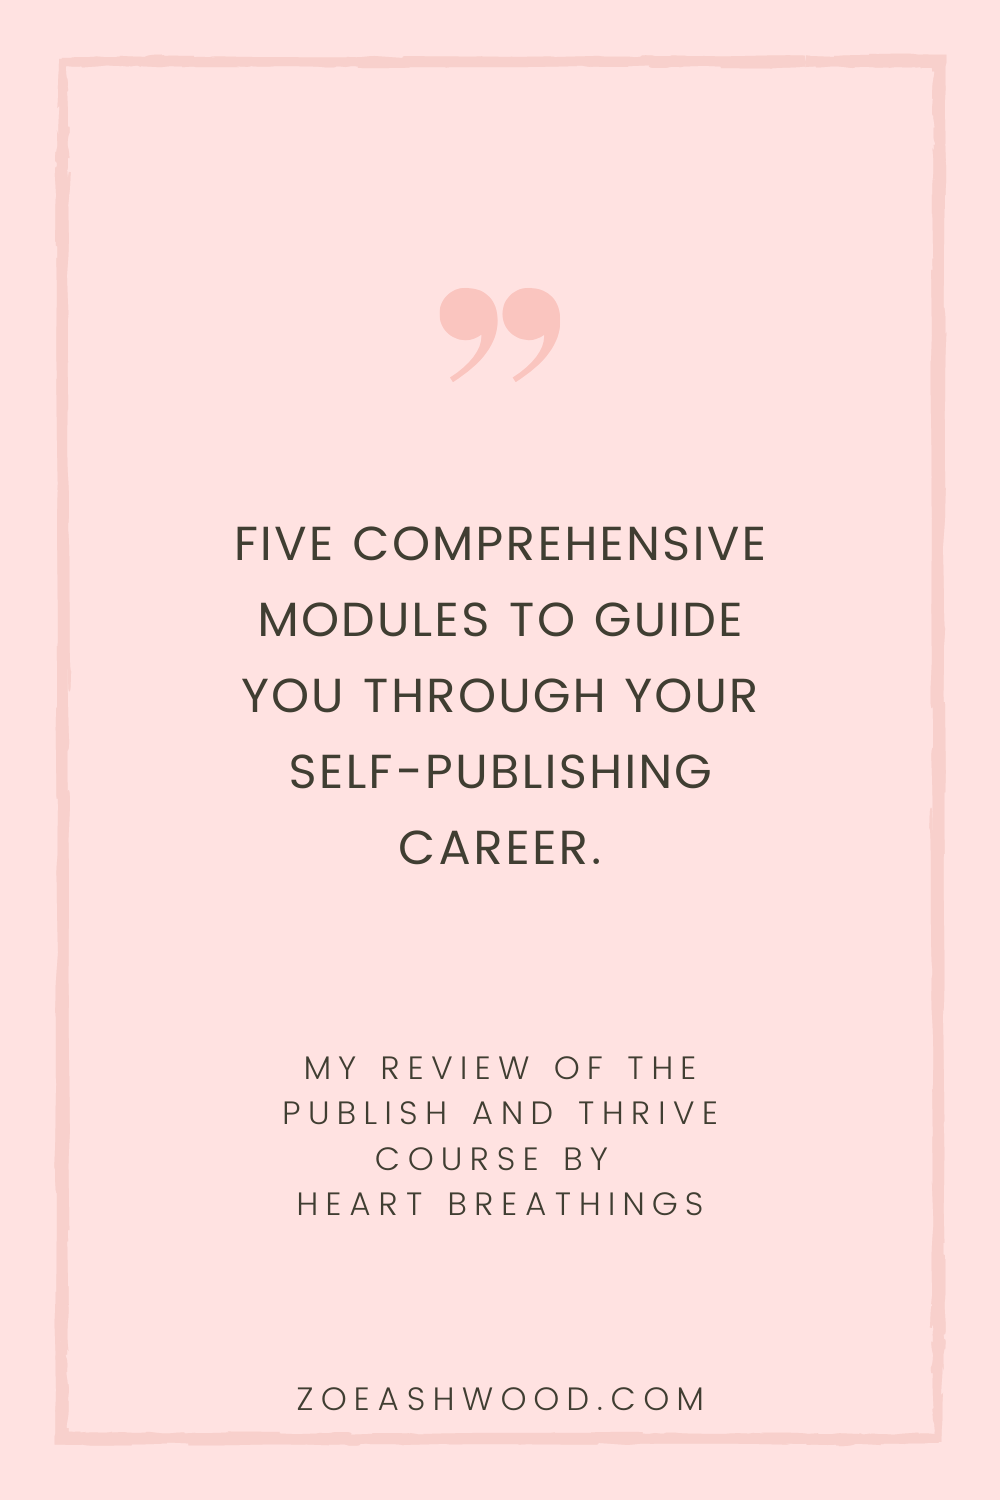 Publish and Thrive Course by Heart Breathings - Course Review by Zoe Ashwood